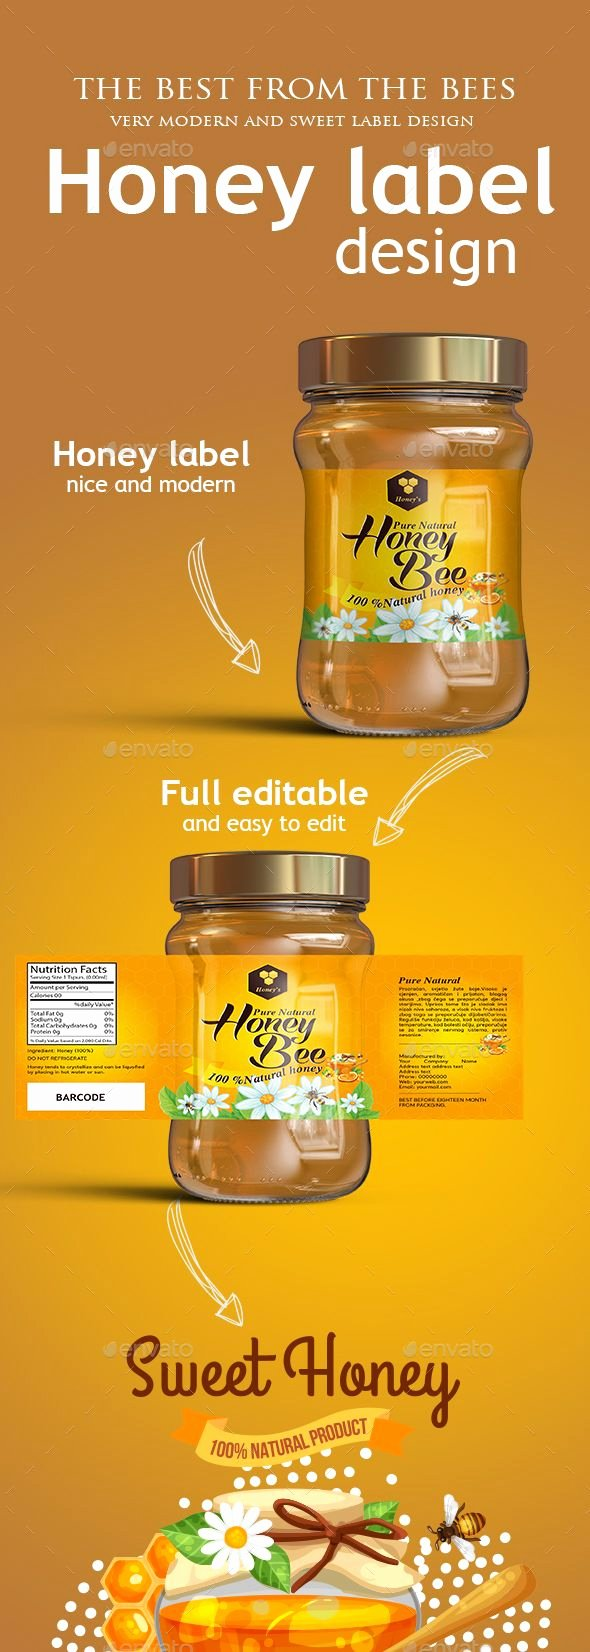 Honey Jar Labels Template Elegant Pin by Maria Alena On Packaging Template